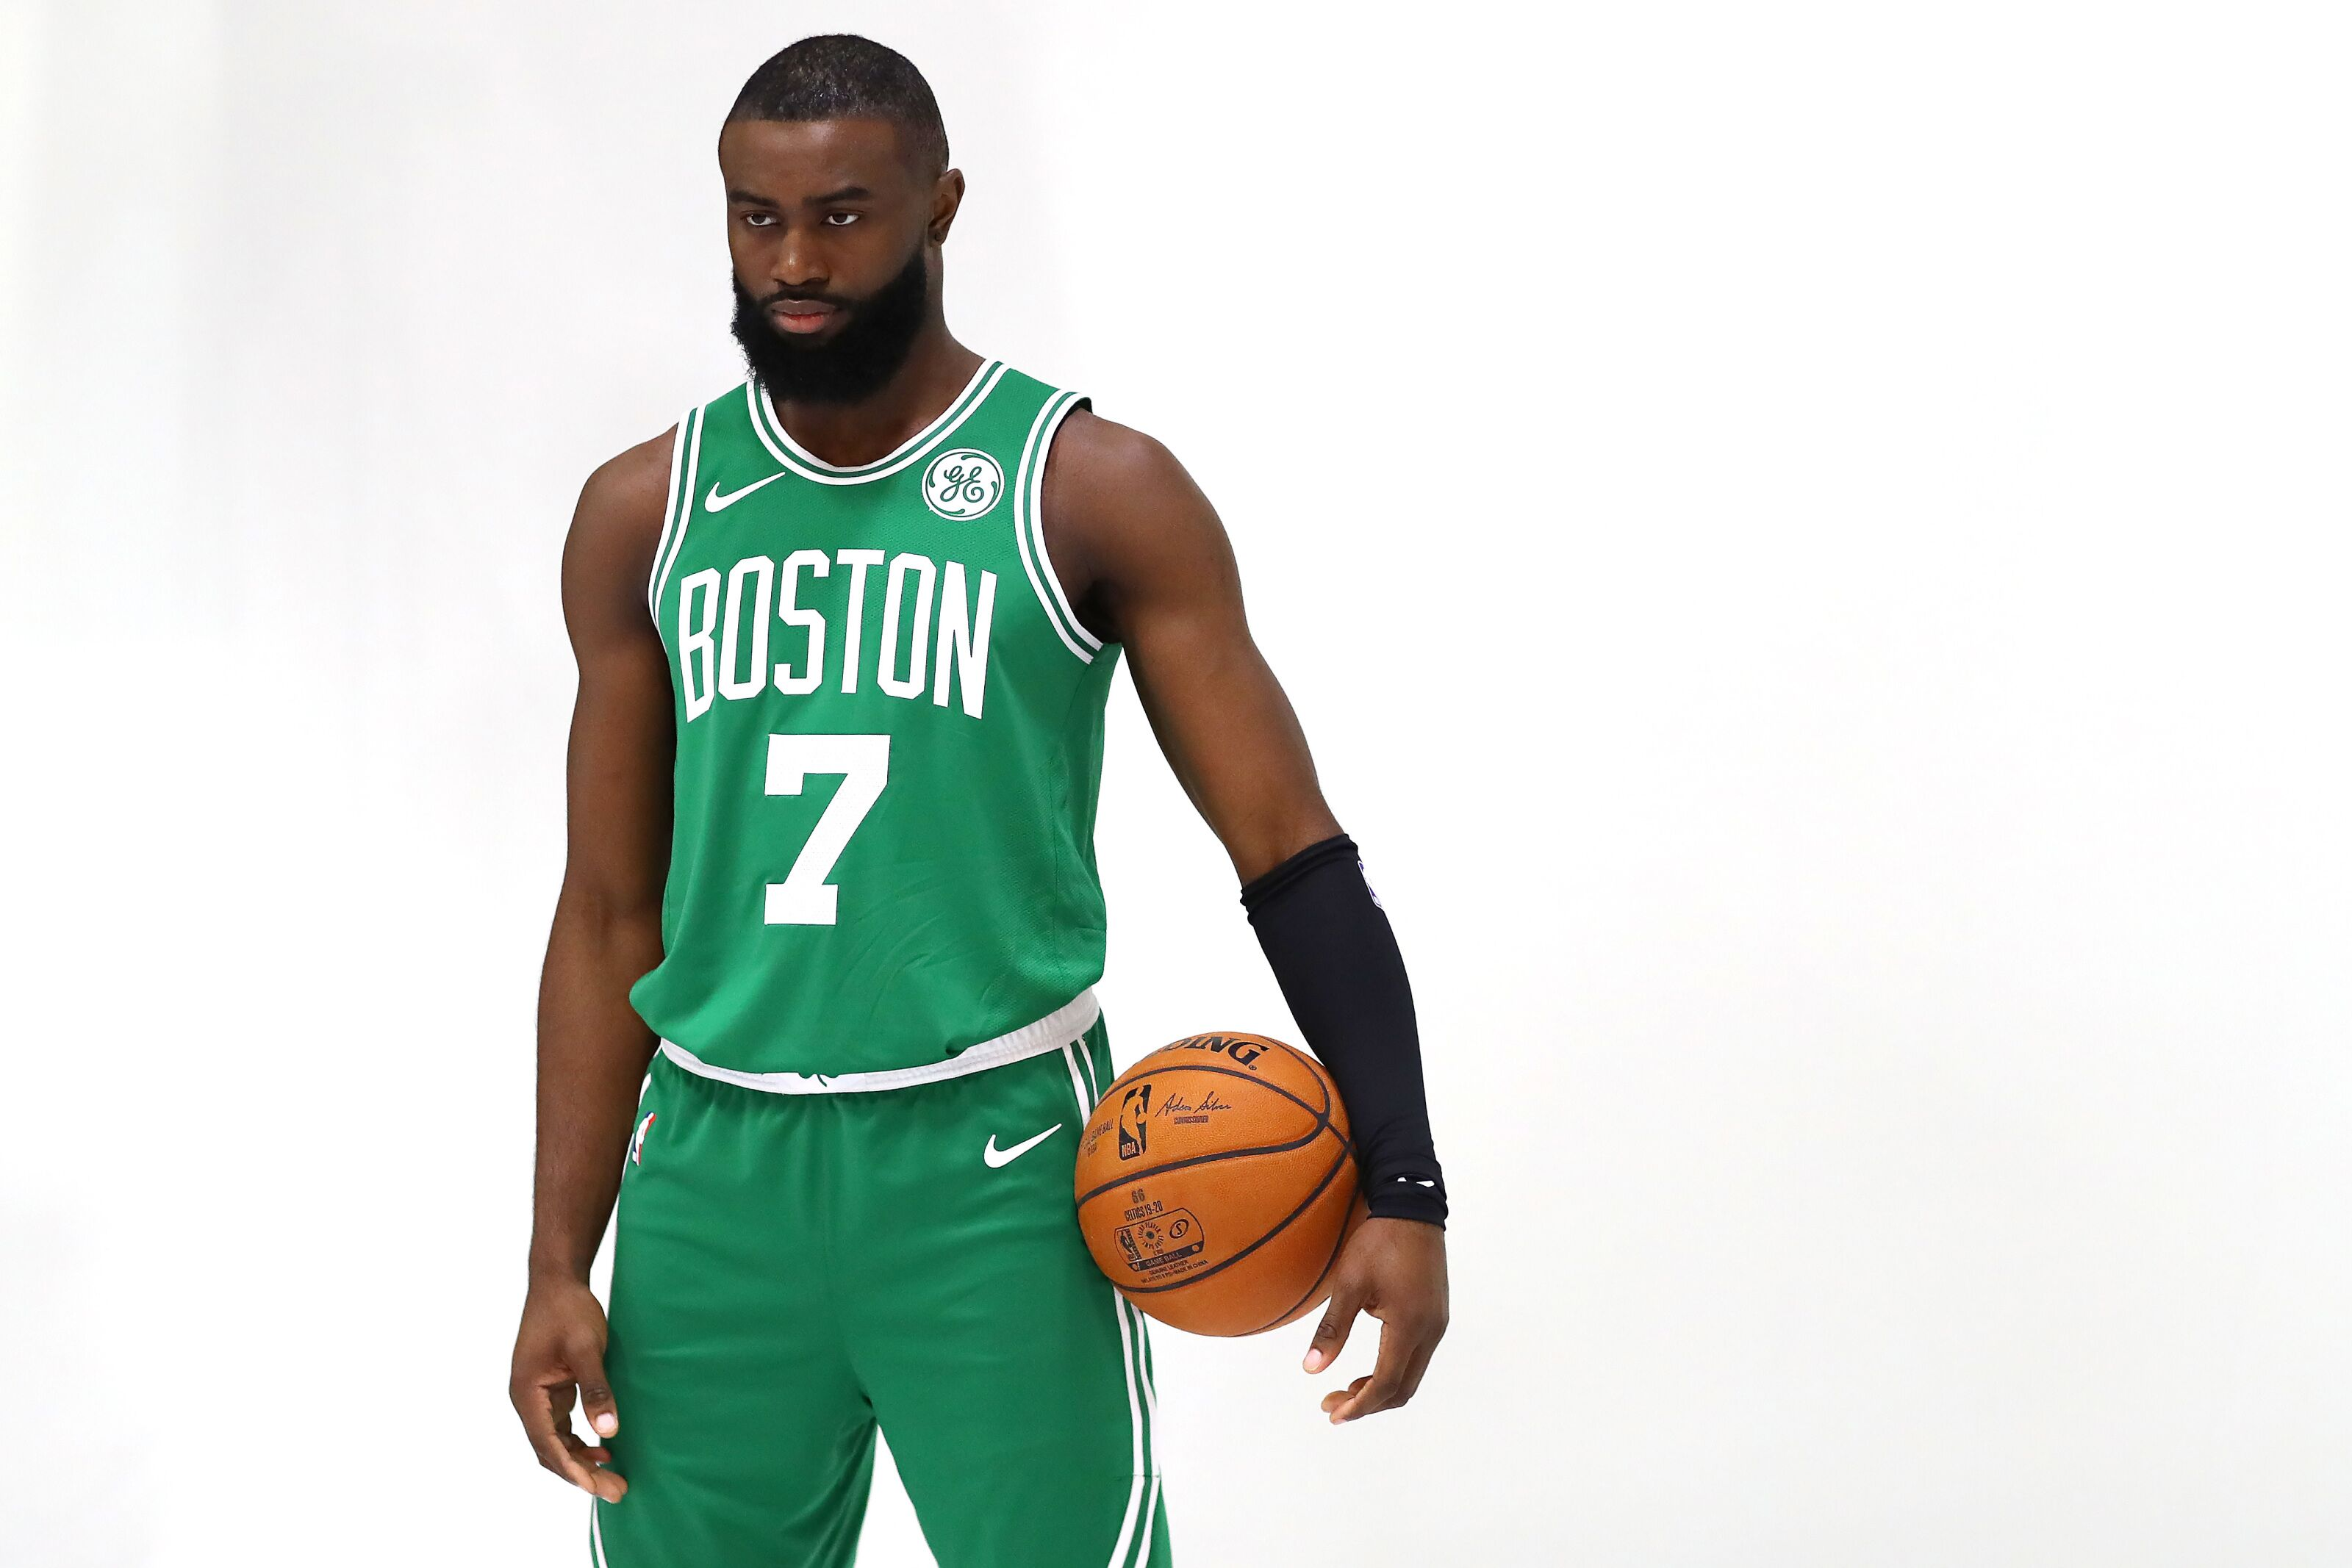 Nba: Nothen But The Boston Celtics  - cover